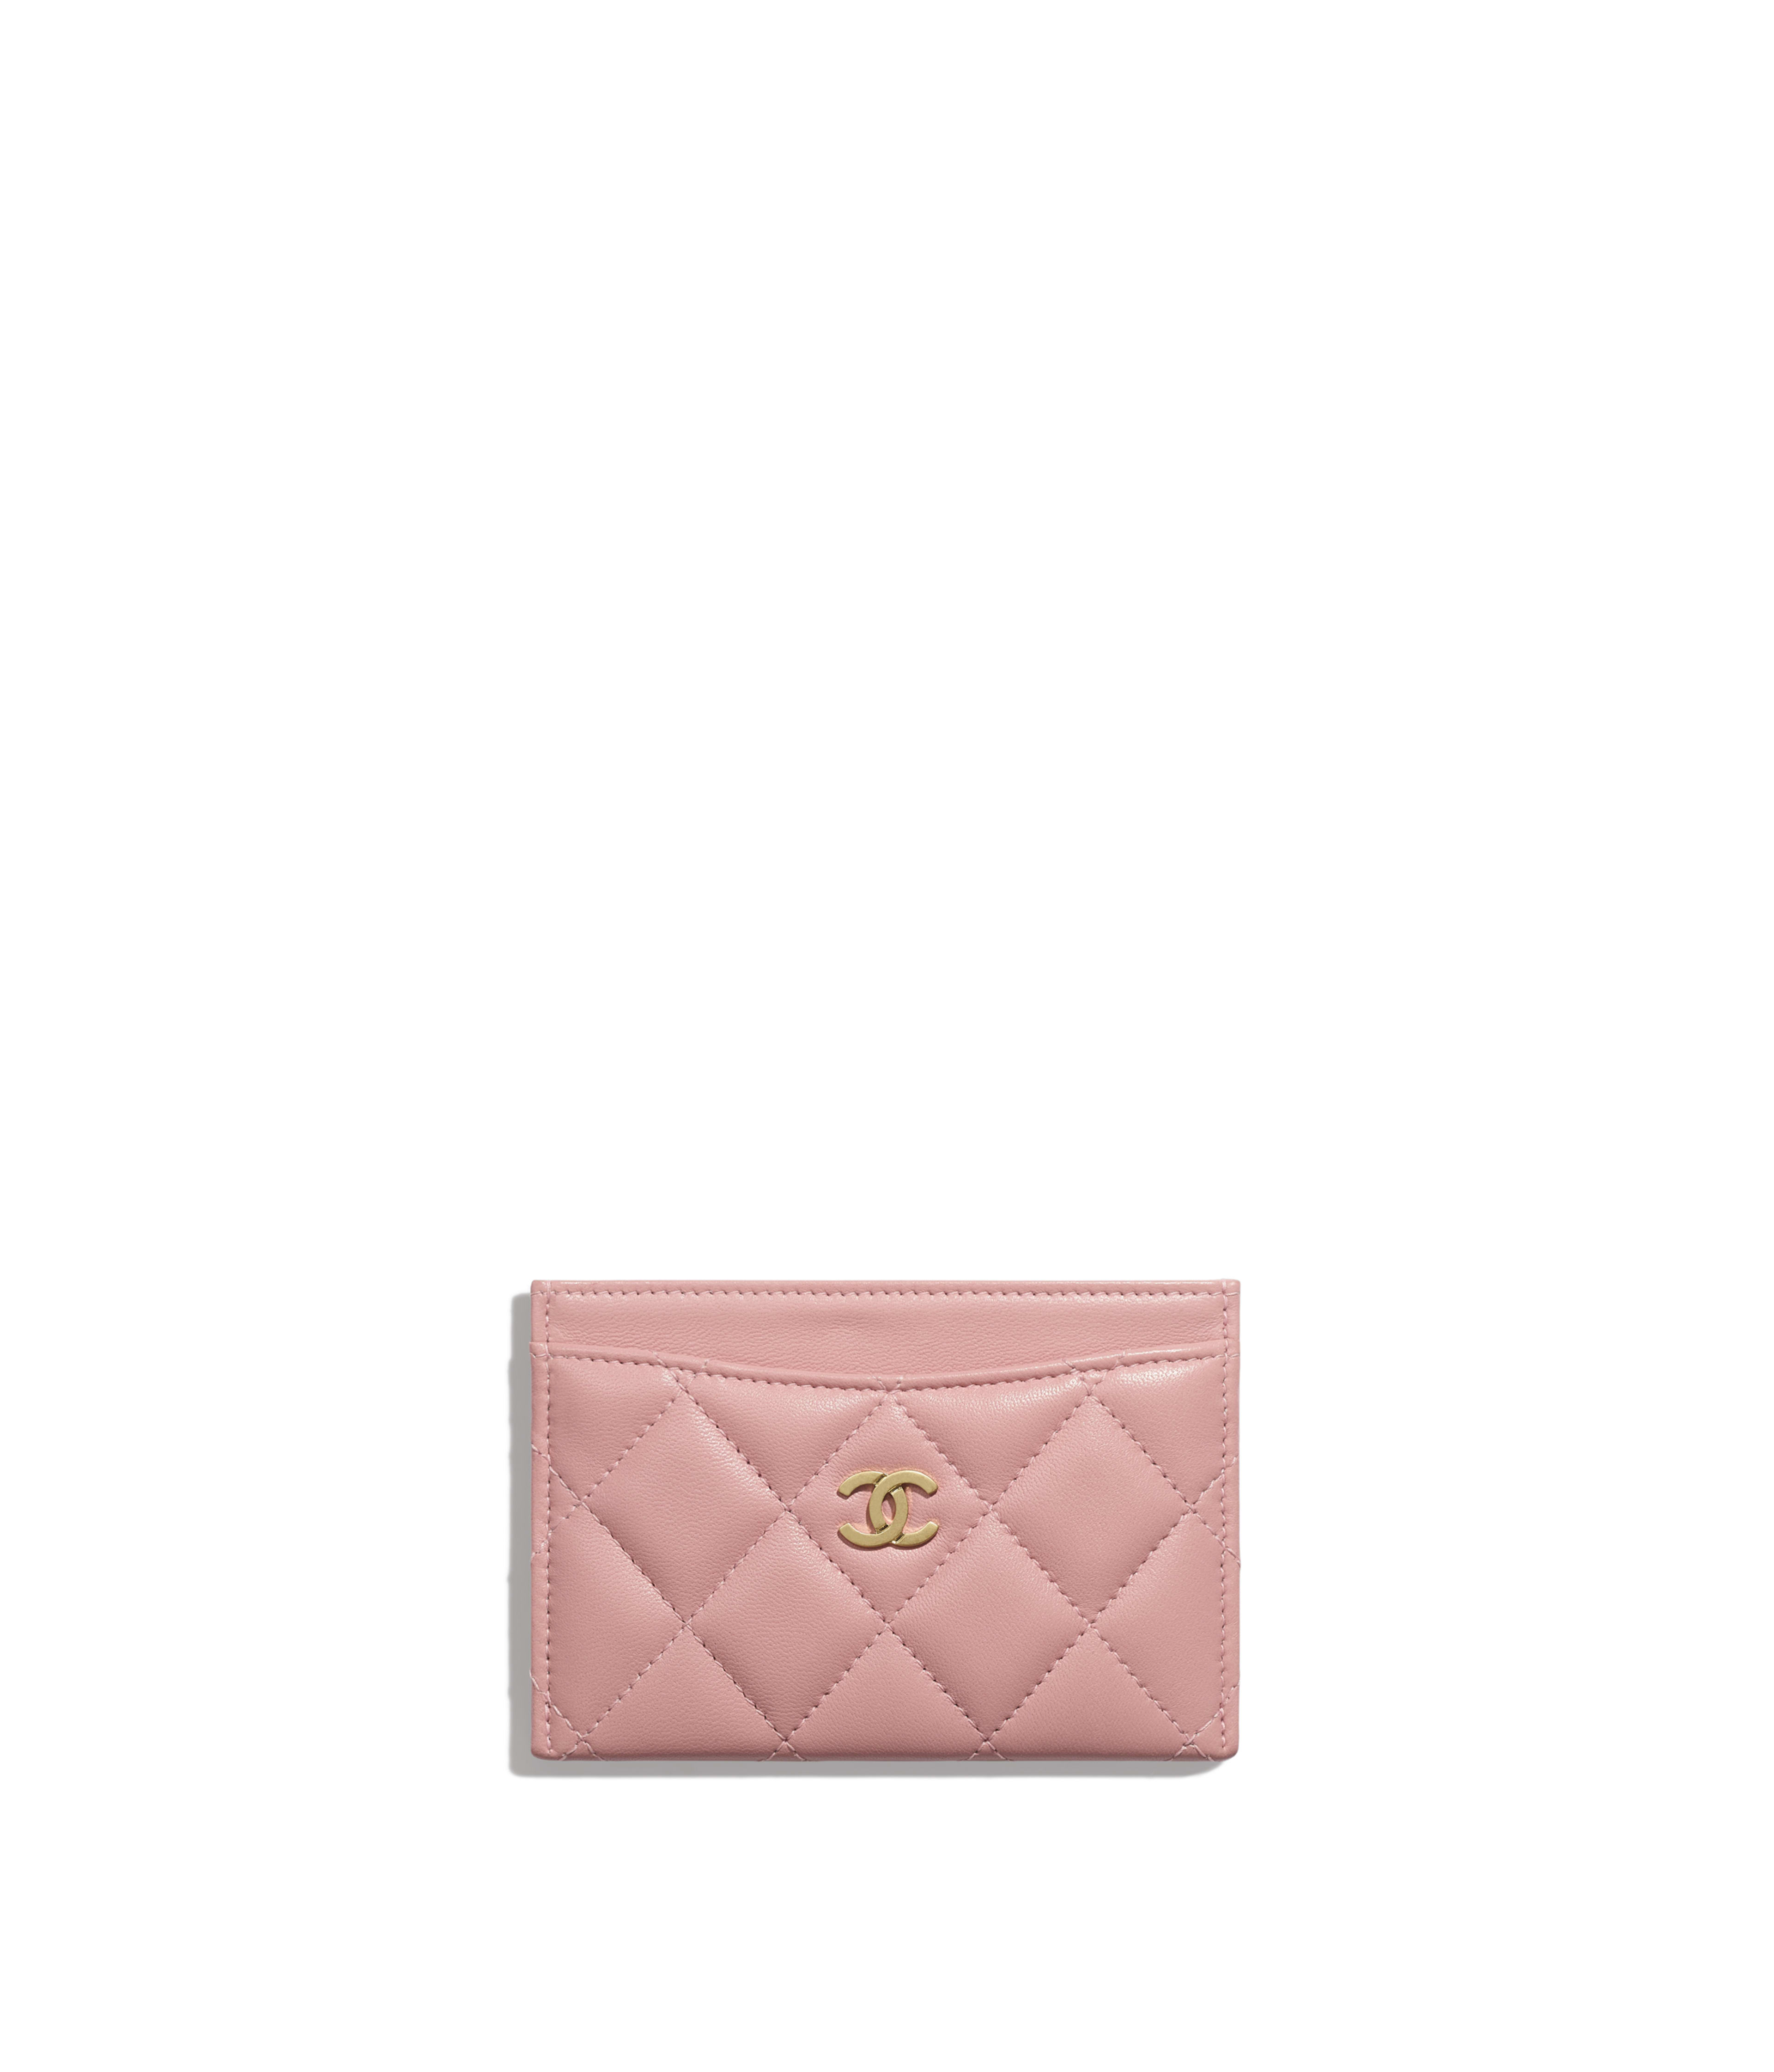 958c3a83a1c5 Classic Card Holder Lambskin & Gold-Tone Metal, Pink Ref. A31510Y07659N0897